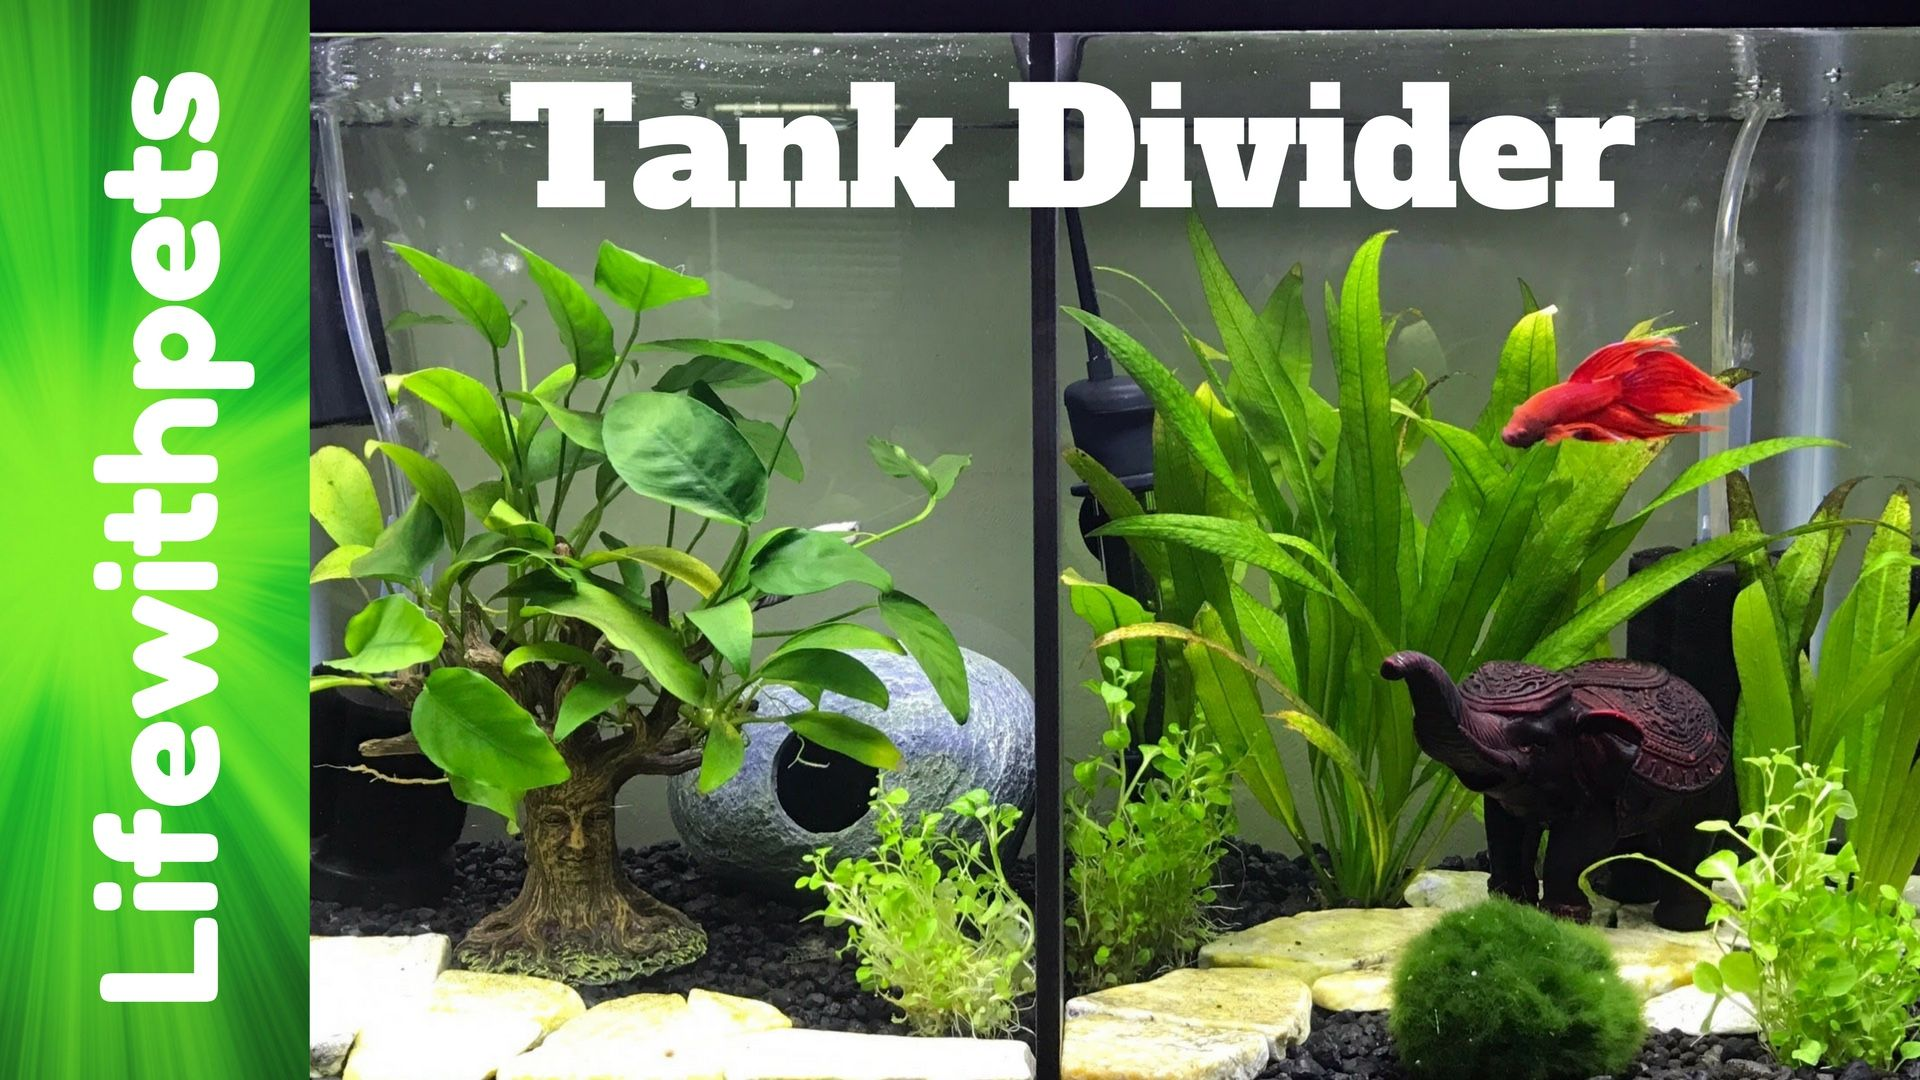 Sturdy Betta Fish tank divider Available on our website